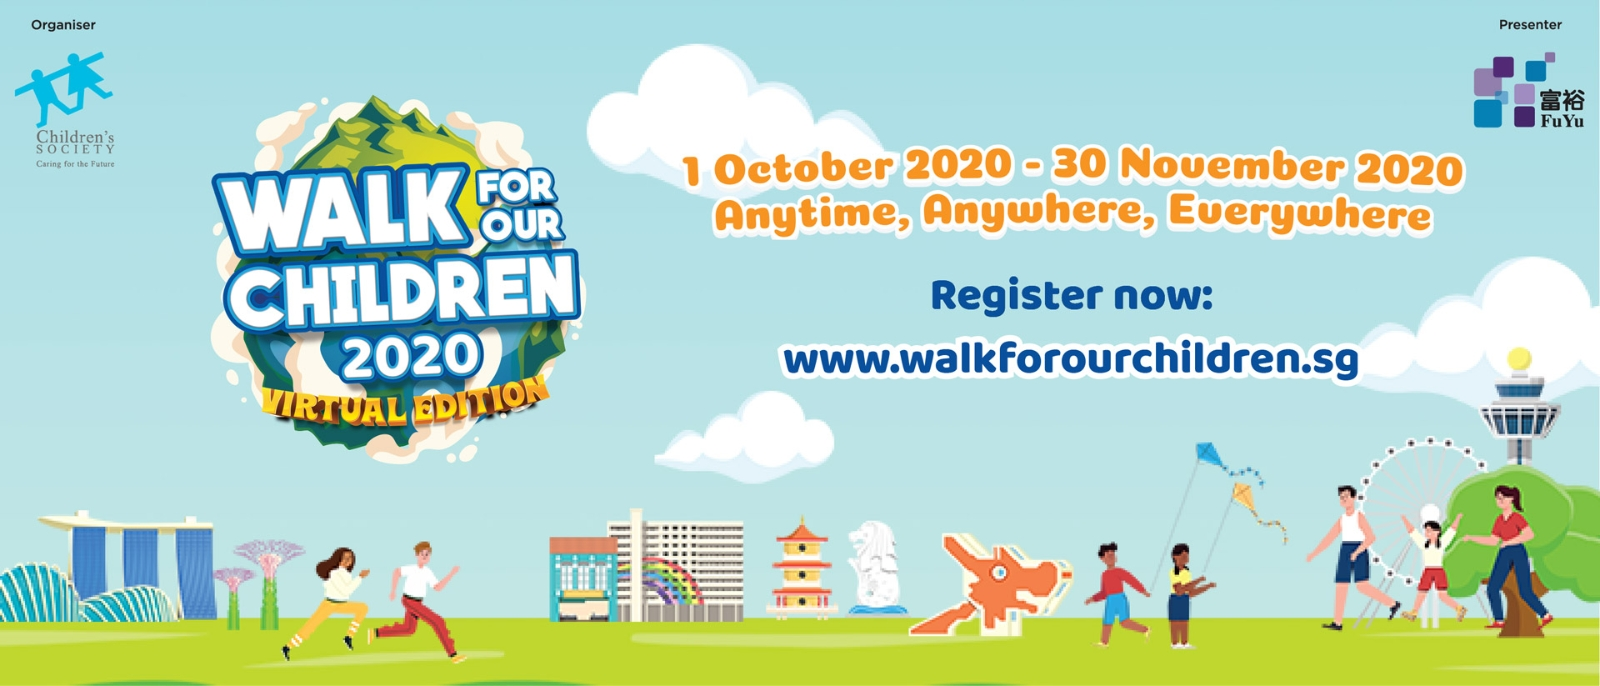 Walk for Our Children 2020 (Virtual Edition)